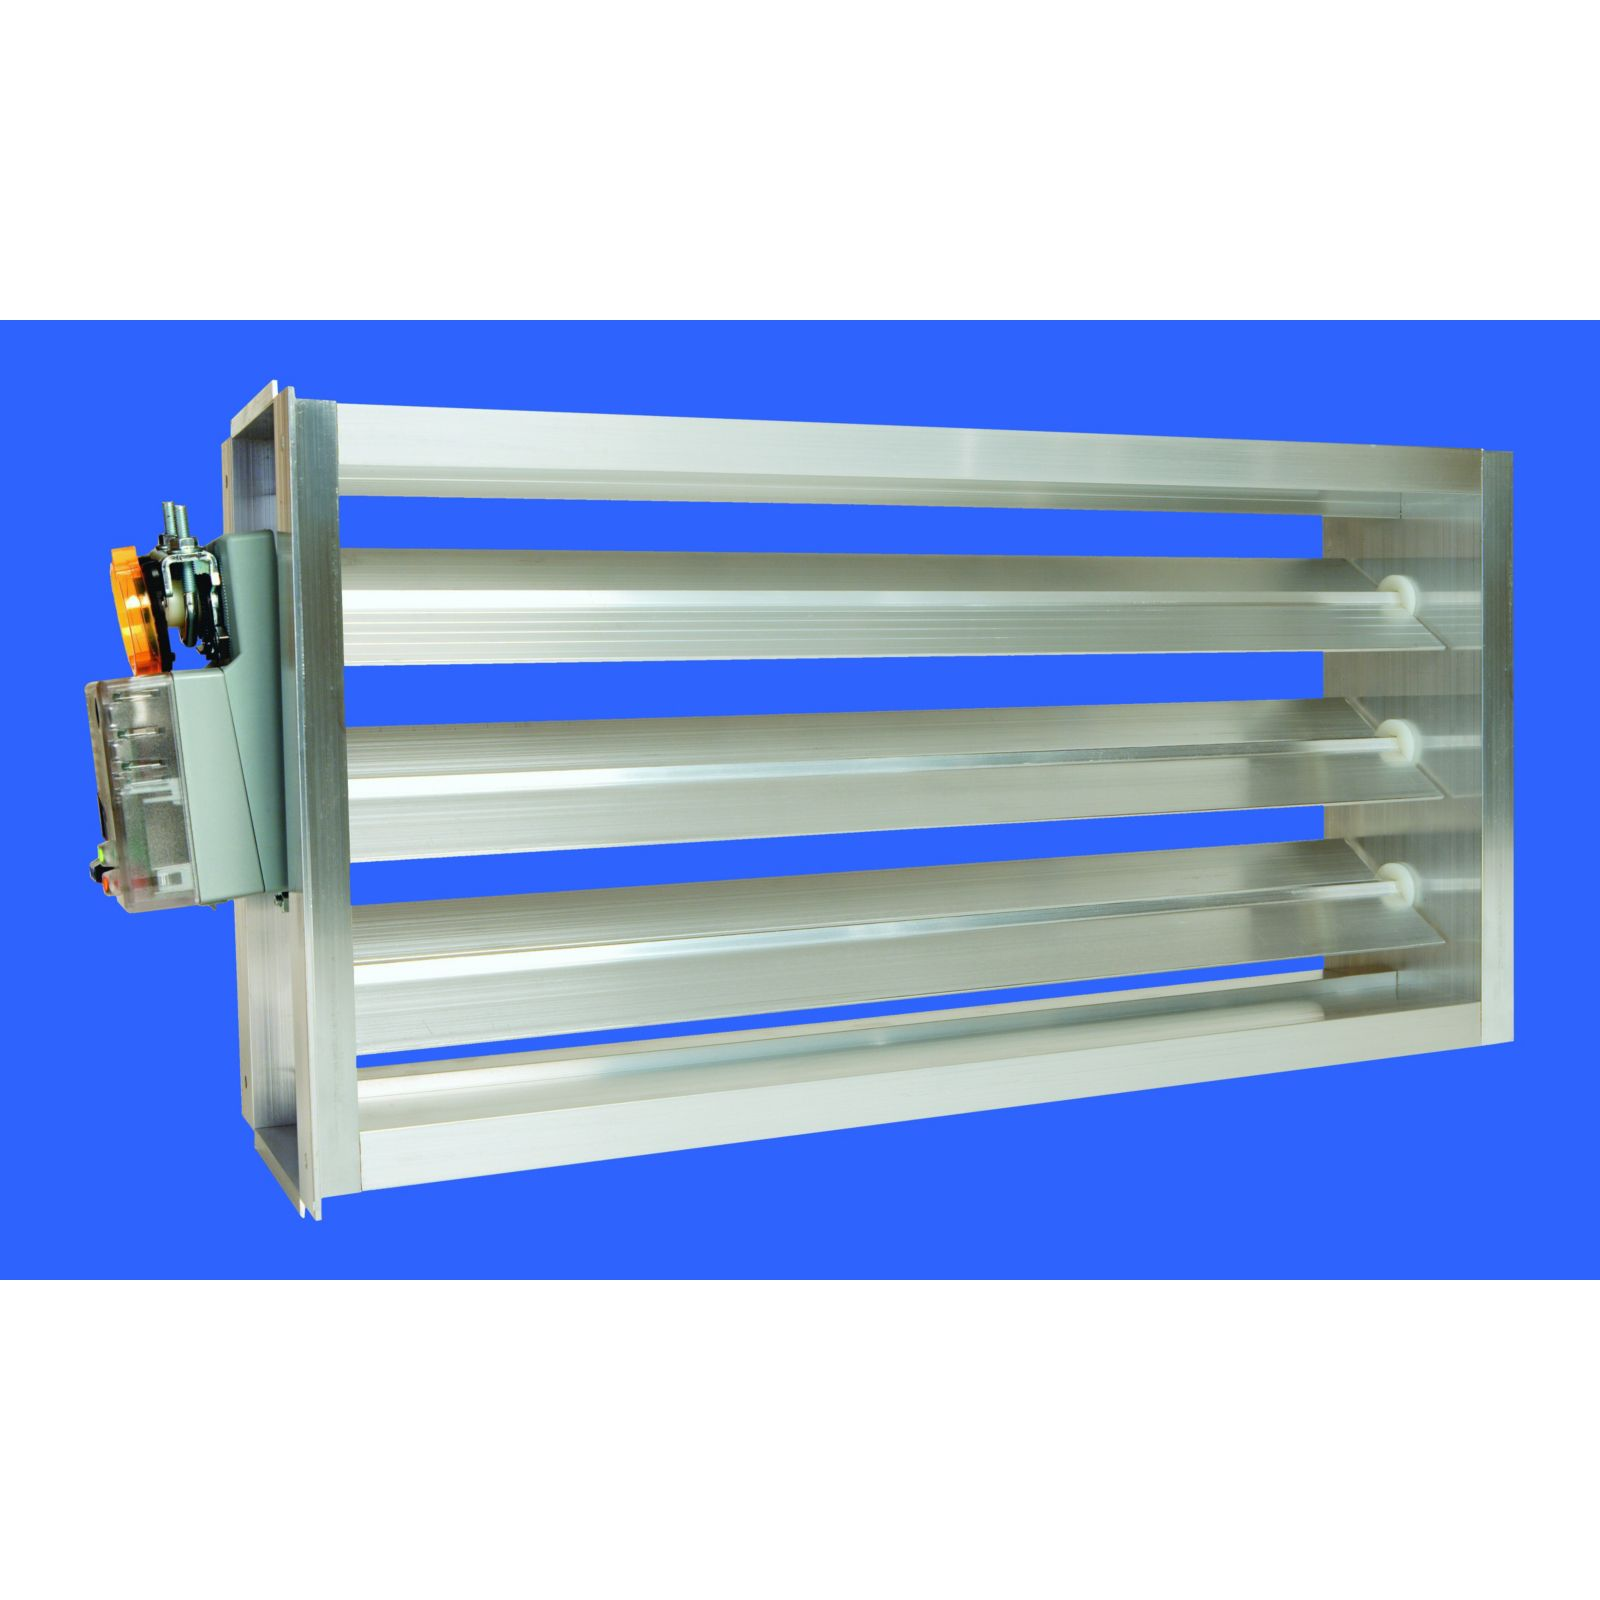 EWC 20X6 ND - Motorized Ultra-Zone Damper, 20